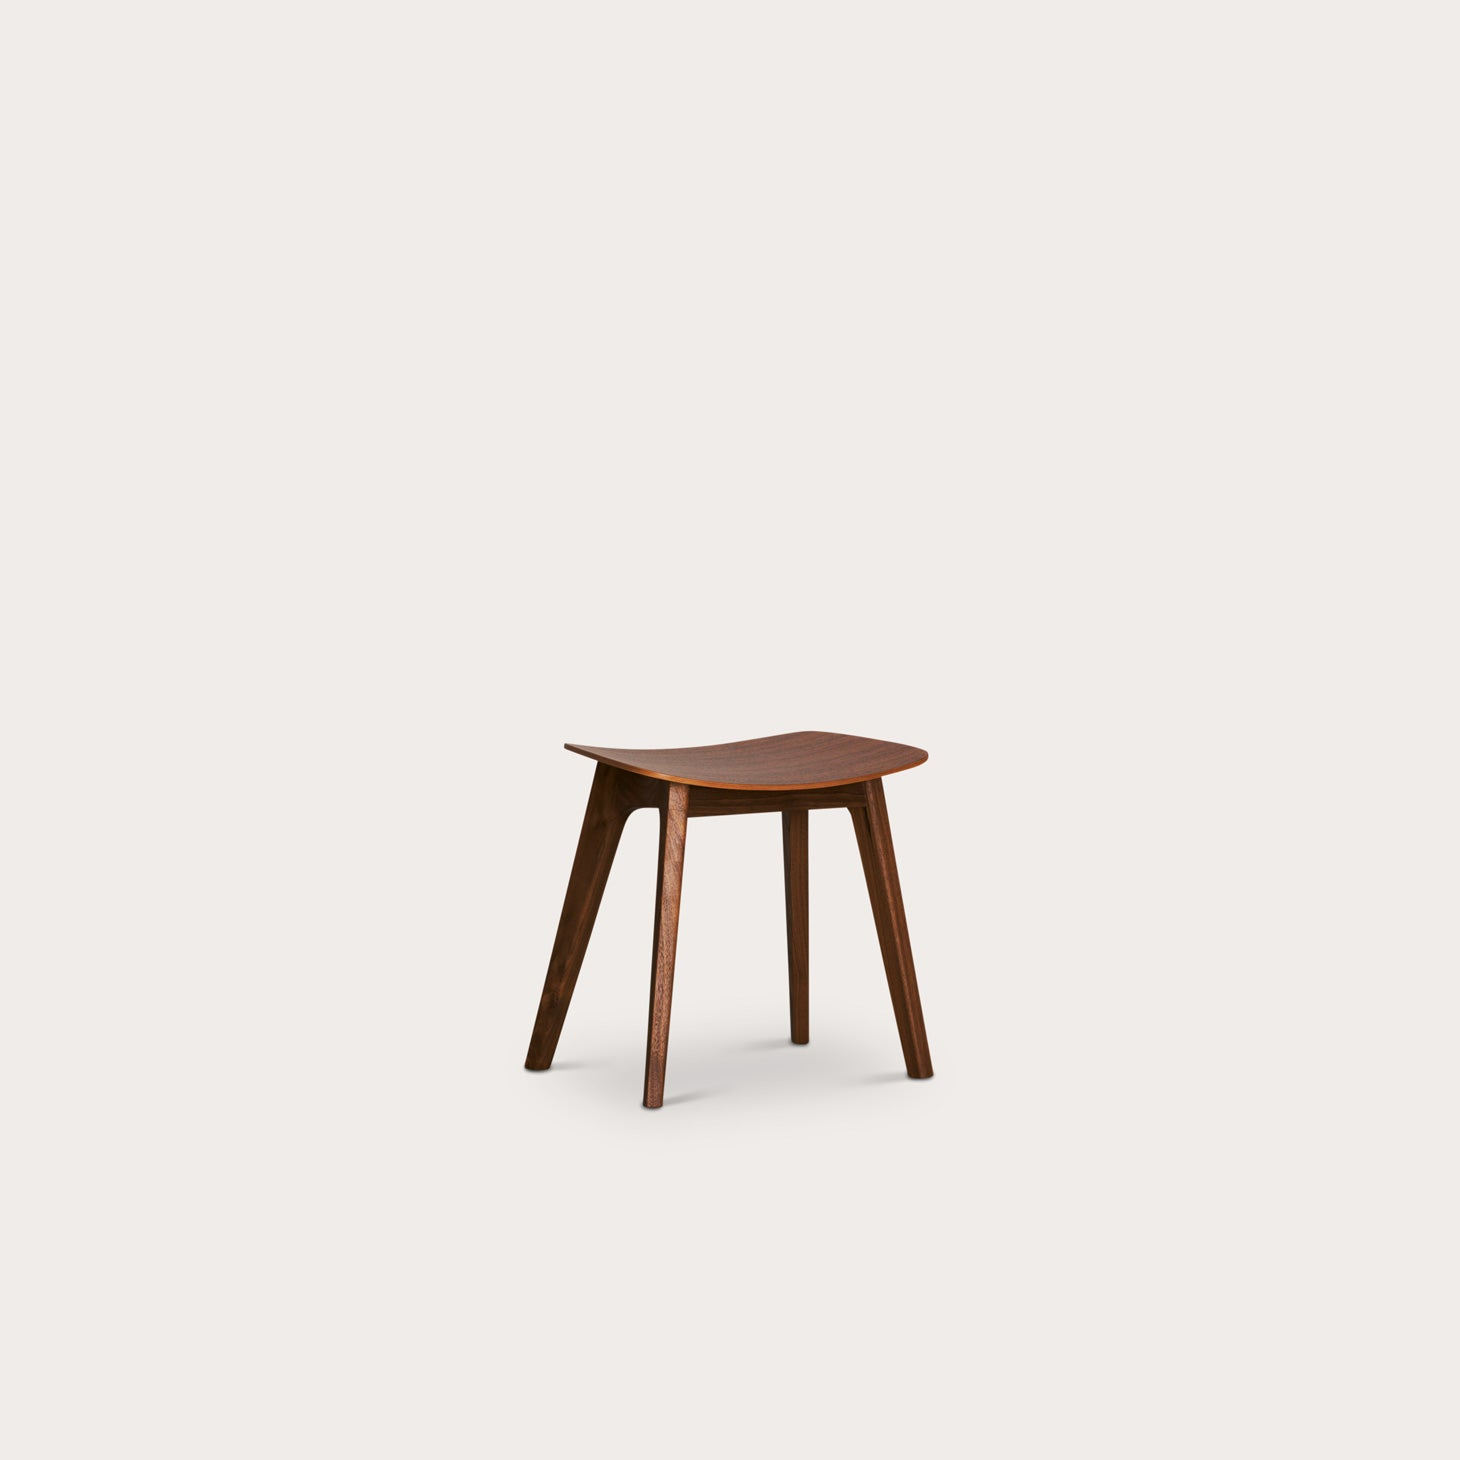 Morph Stool Seating Formstelle Designer Furniture Sku: 006-120-10070